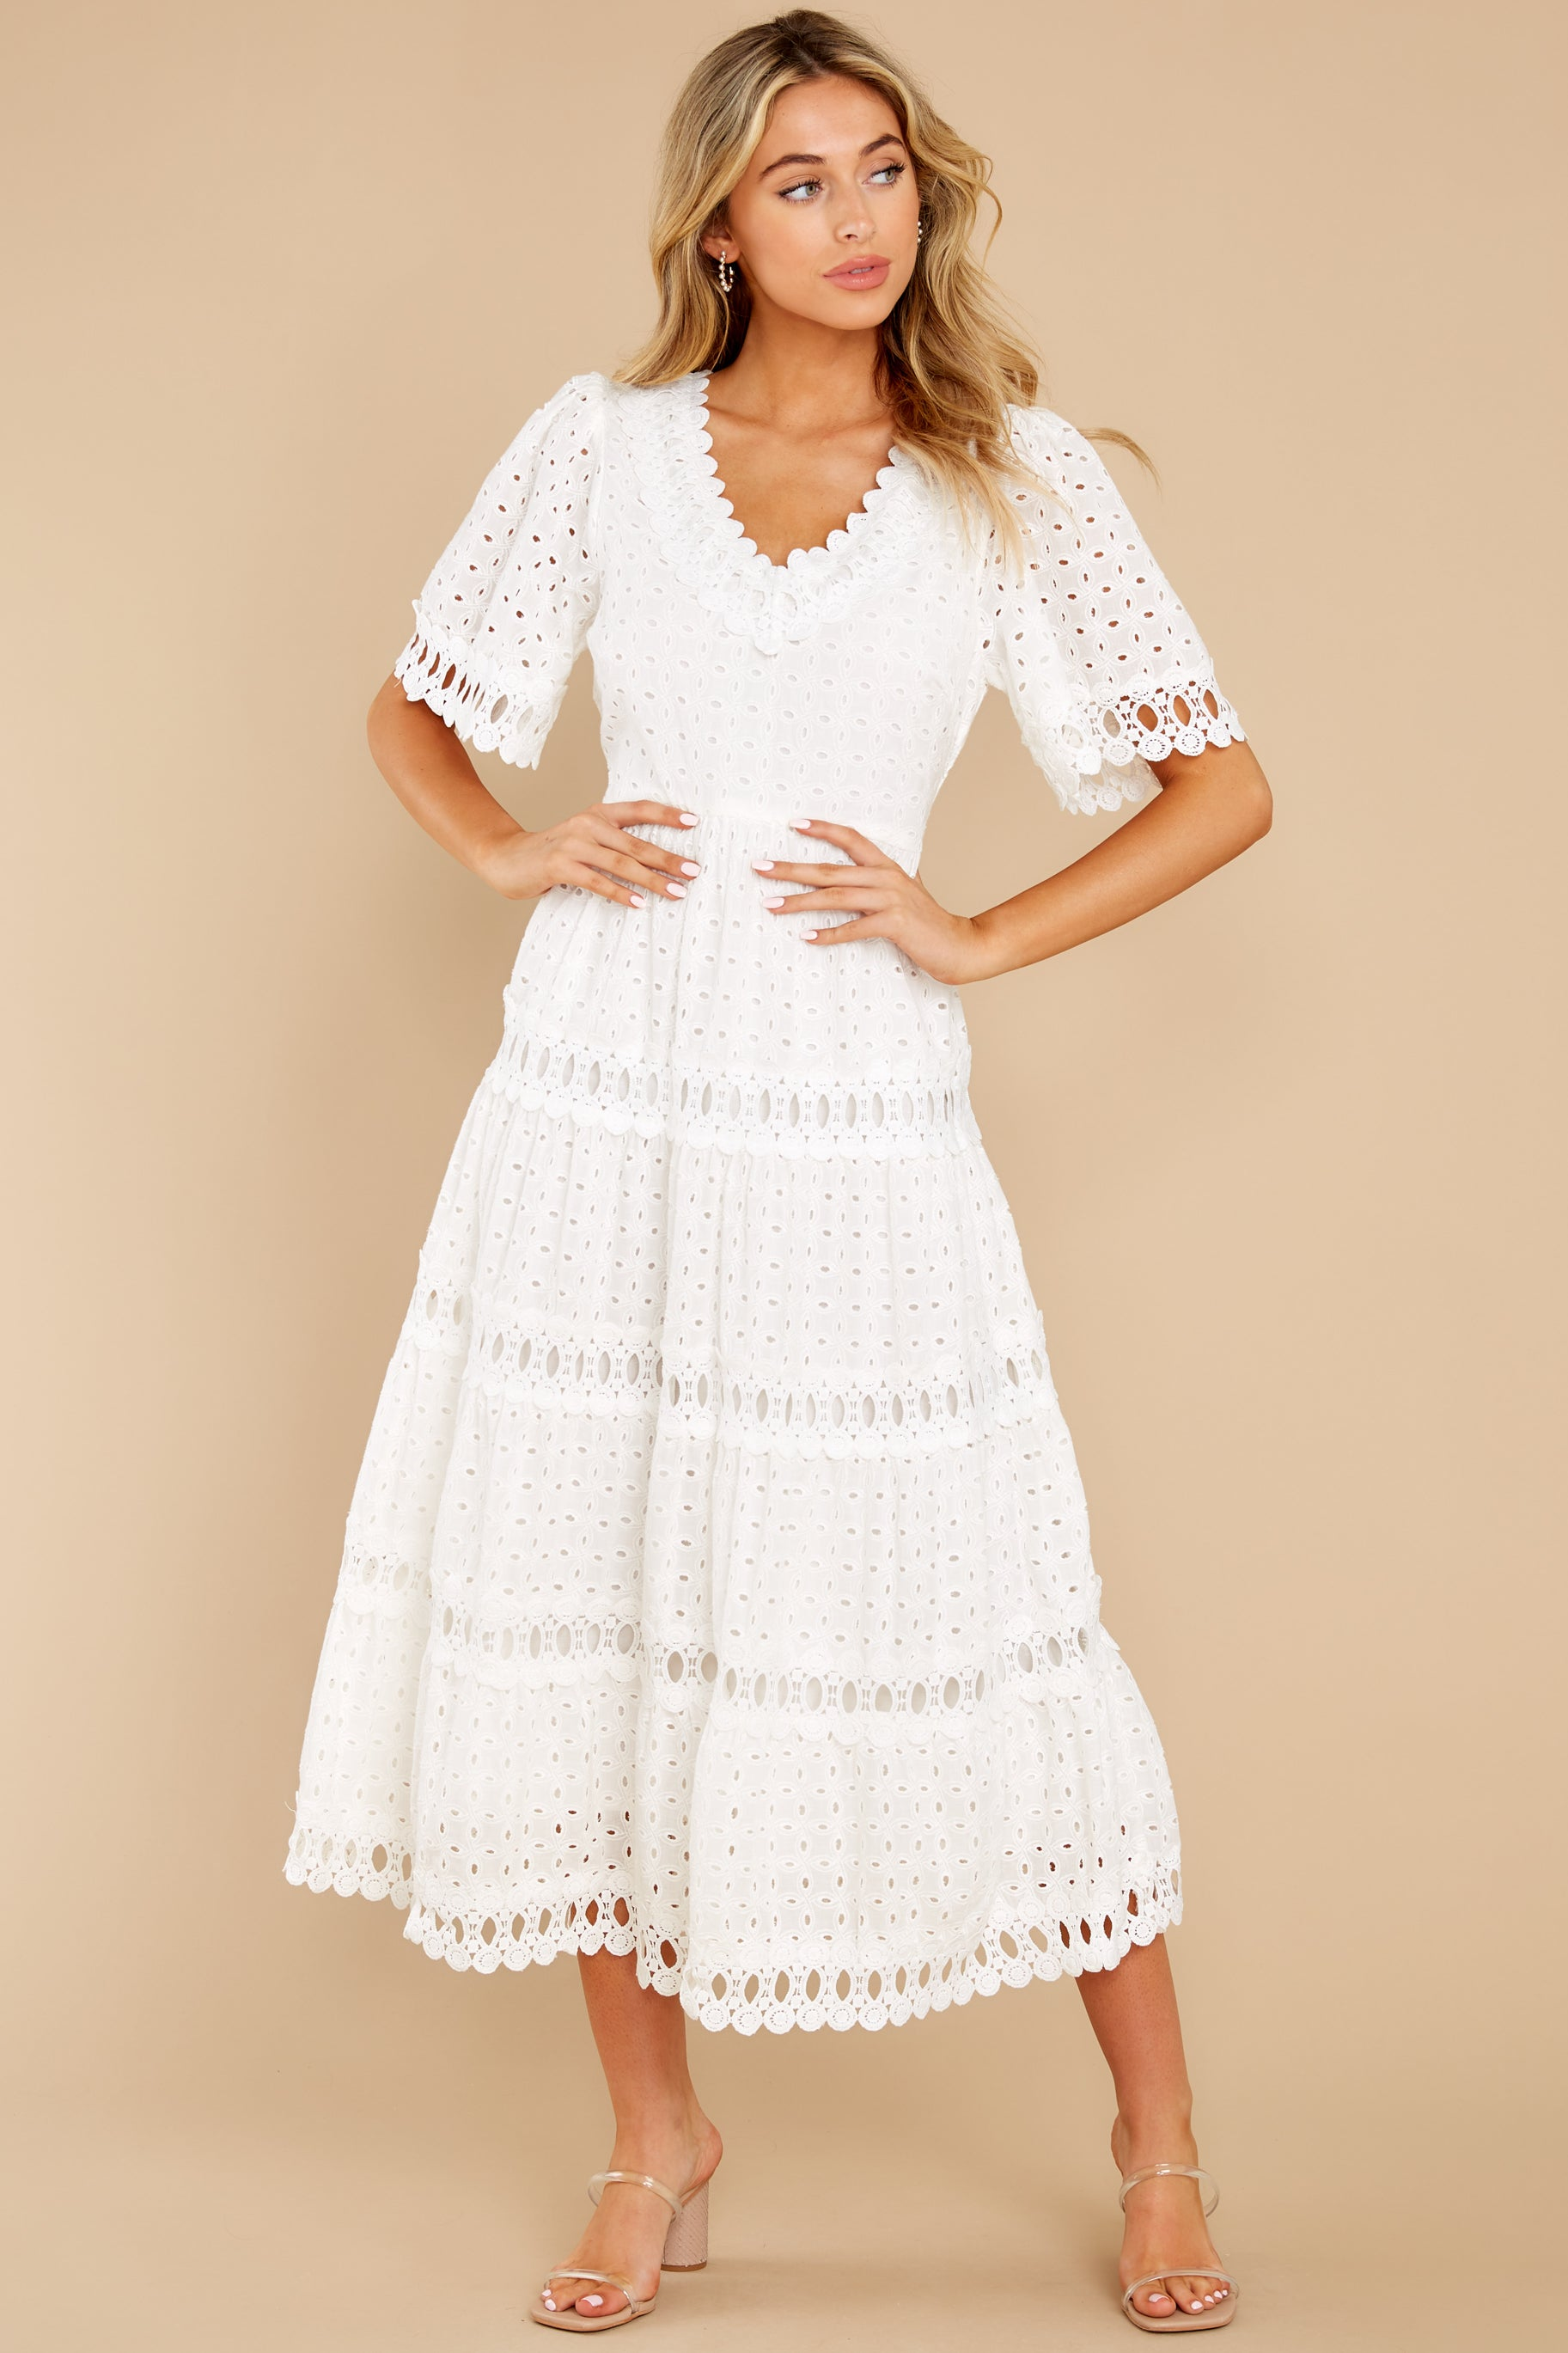 4 Couldn't Help It Off White Eyelet Maxi Dress at reddress.com